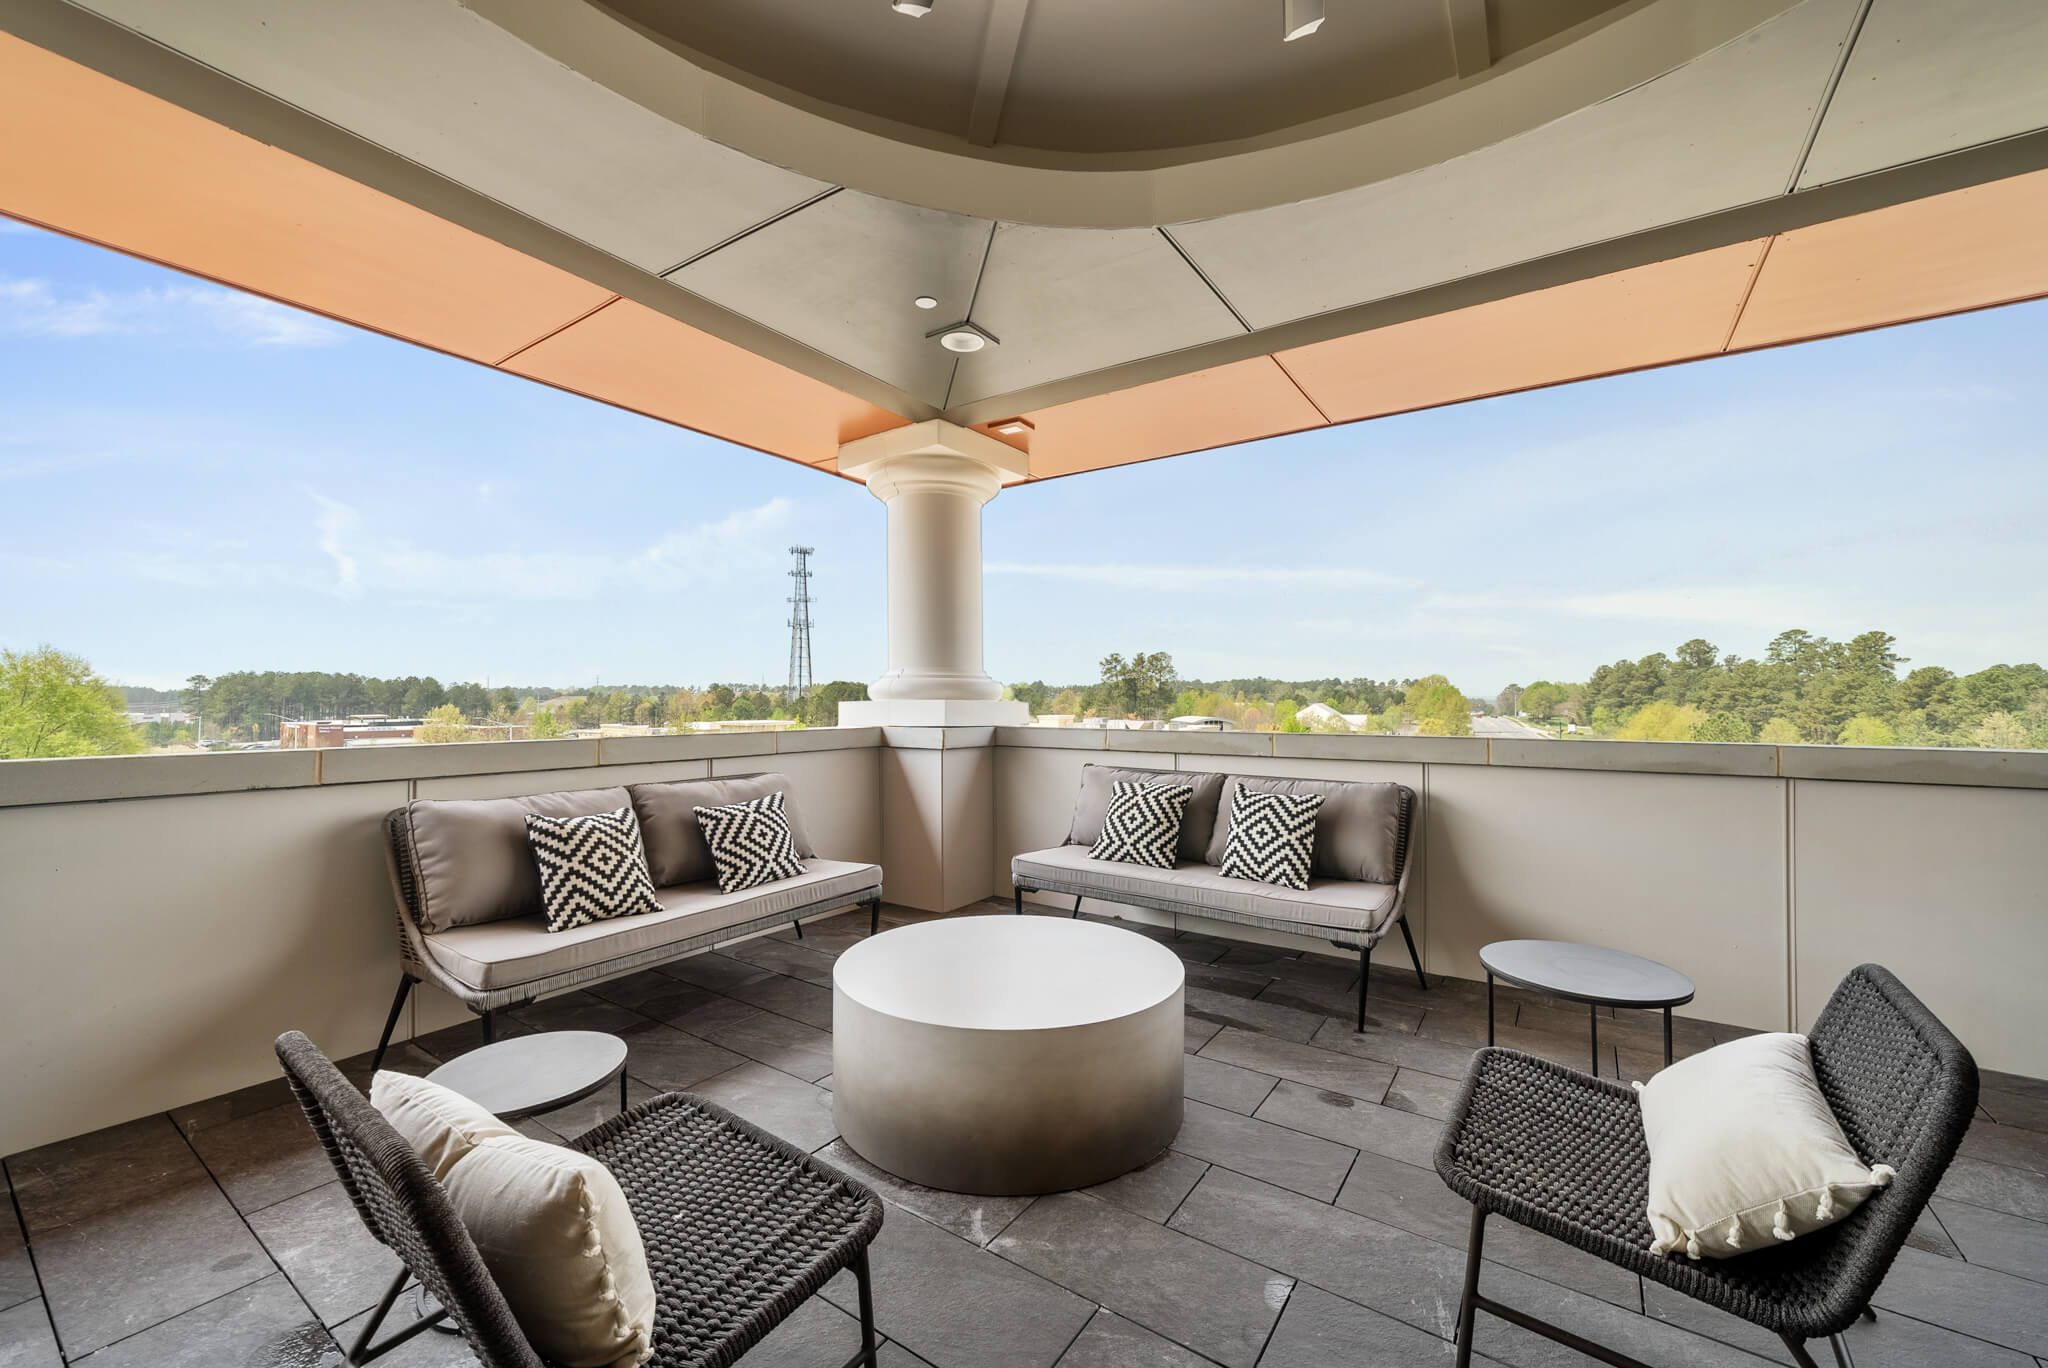 Outdoor Covered Patio with Seating